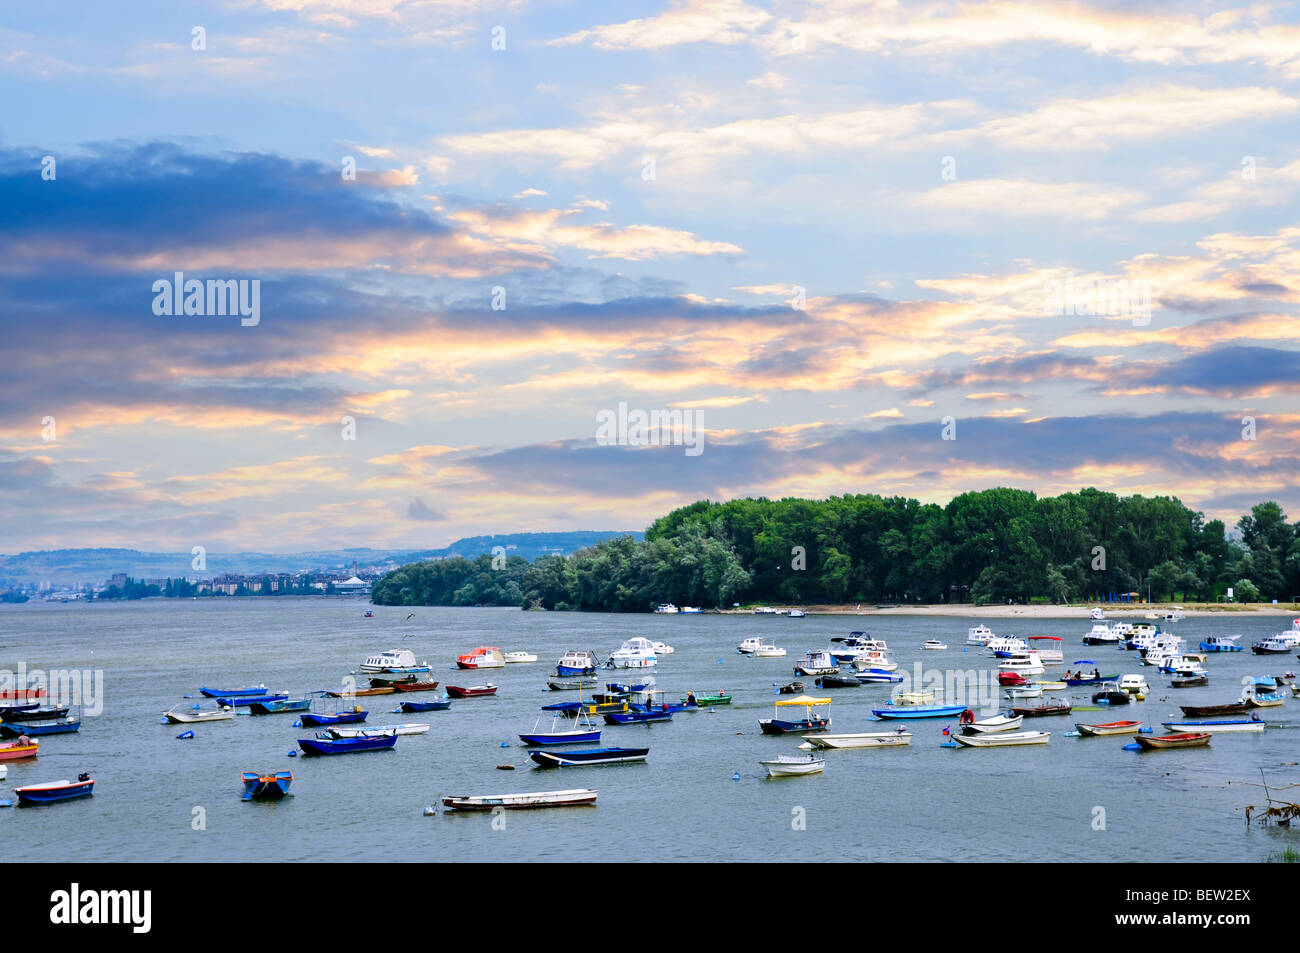 Many small fishing boats anchored on Danube river. View from Zemun part of Belgrade. - Stock Image